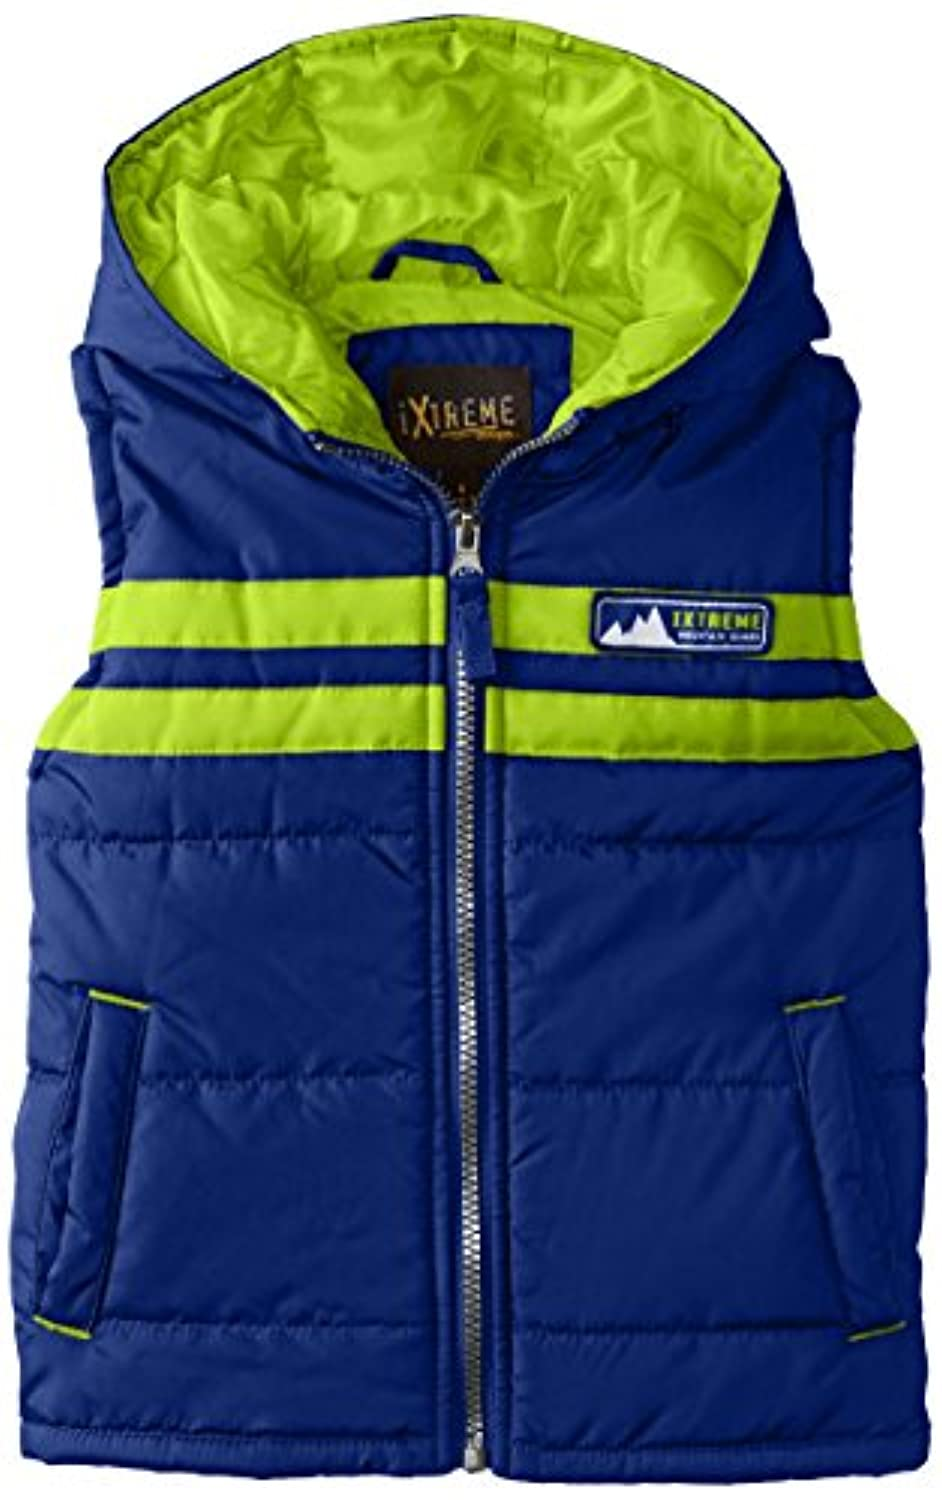 iXtreme Boys ' Puffer Vest with Hood